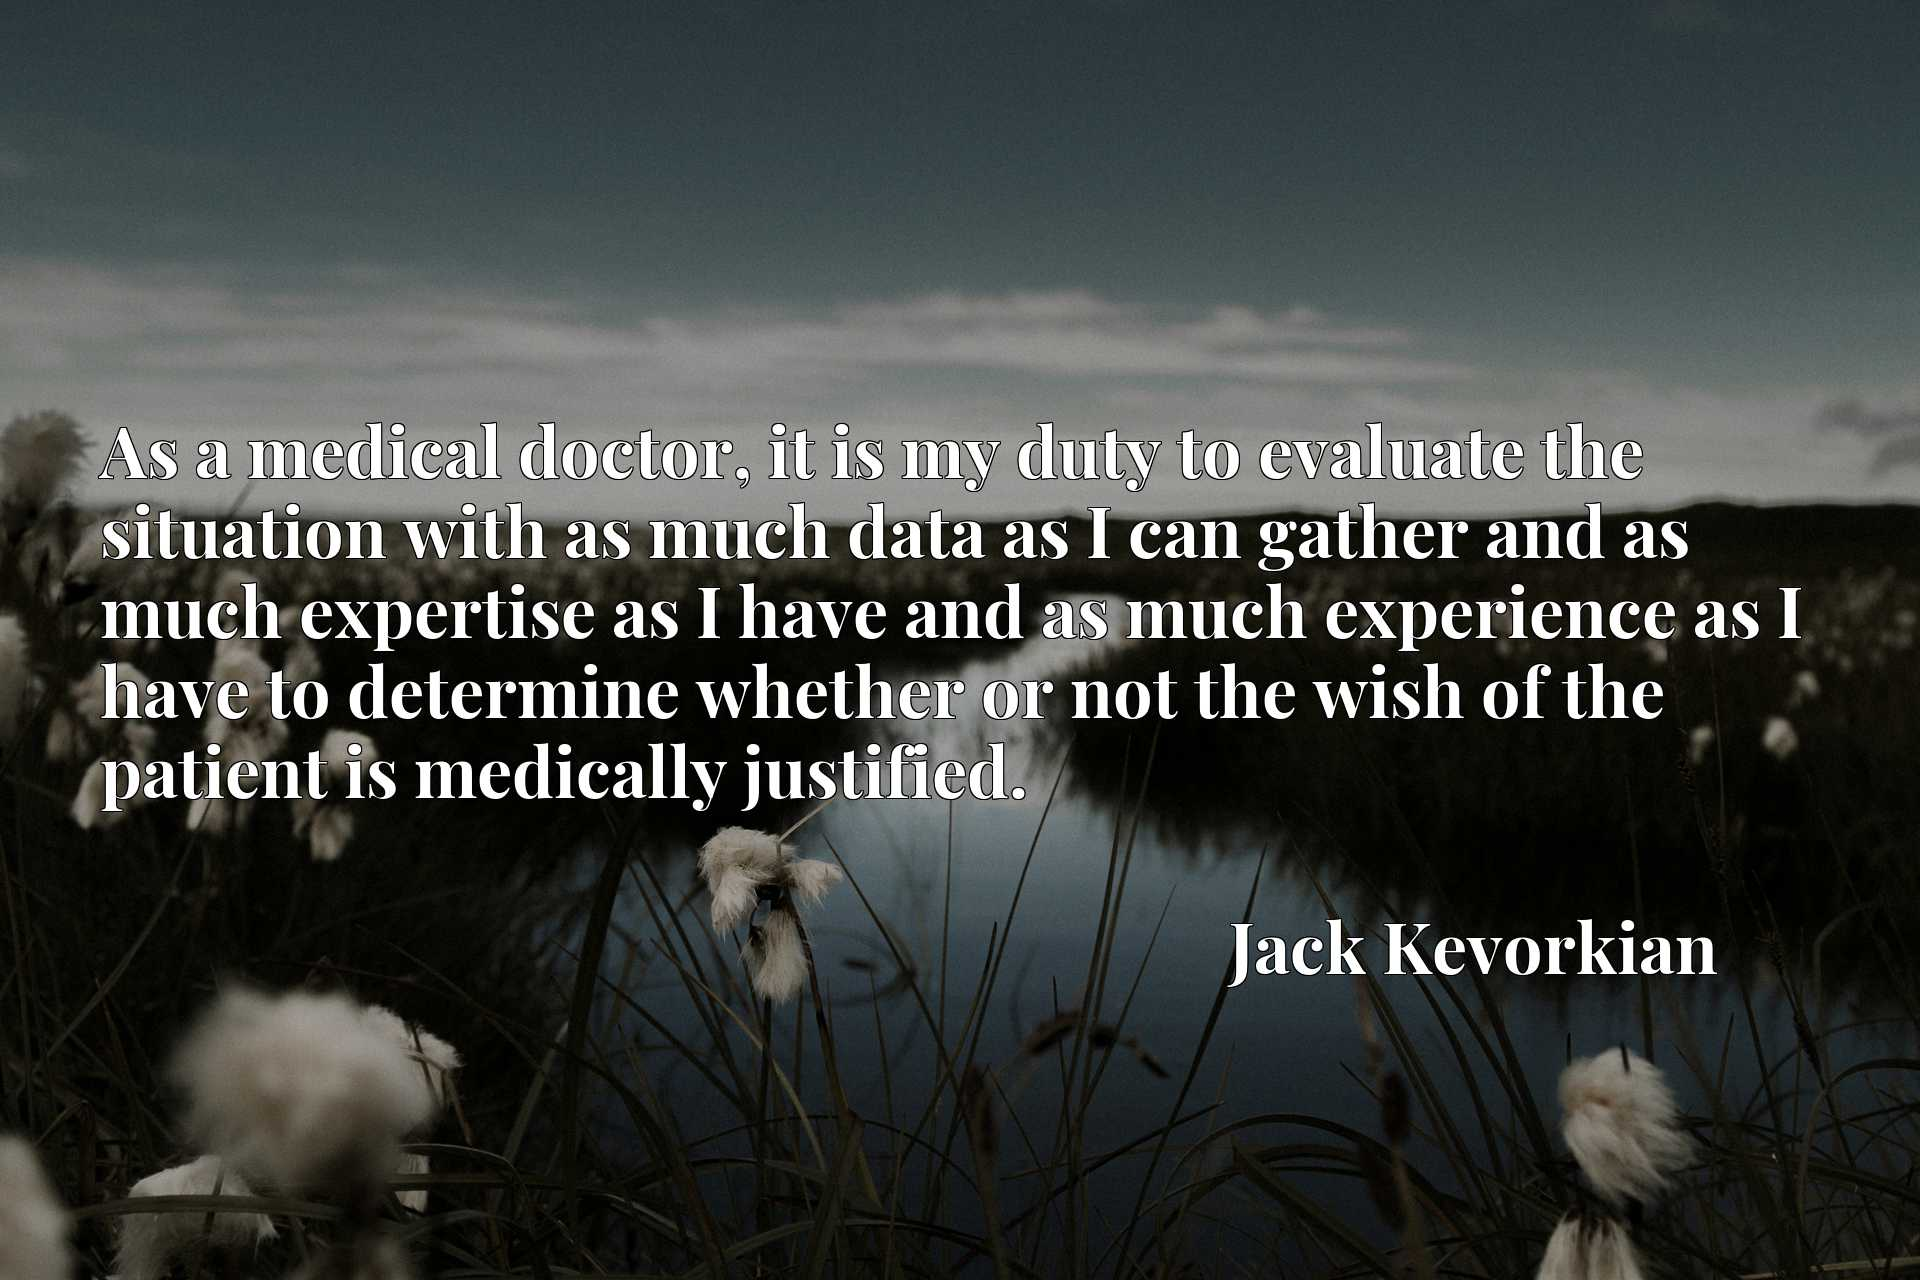 As a medical doctor, it is my duty to evaluate the situation with as much data as I can gather and as much expertise as I have and as much experience as I have to determine whether or not the wish of the patient is medically justified.